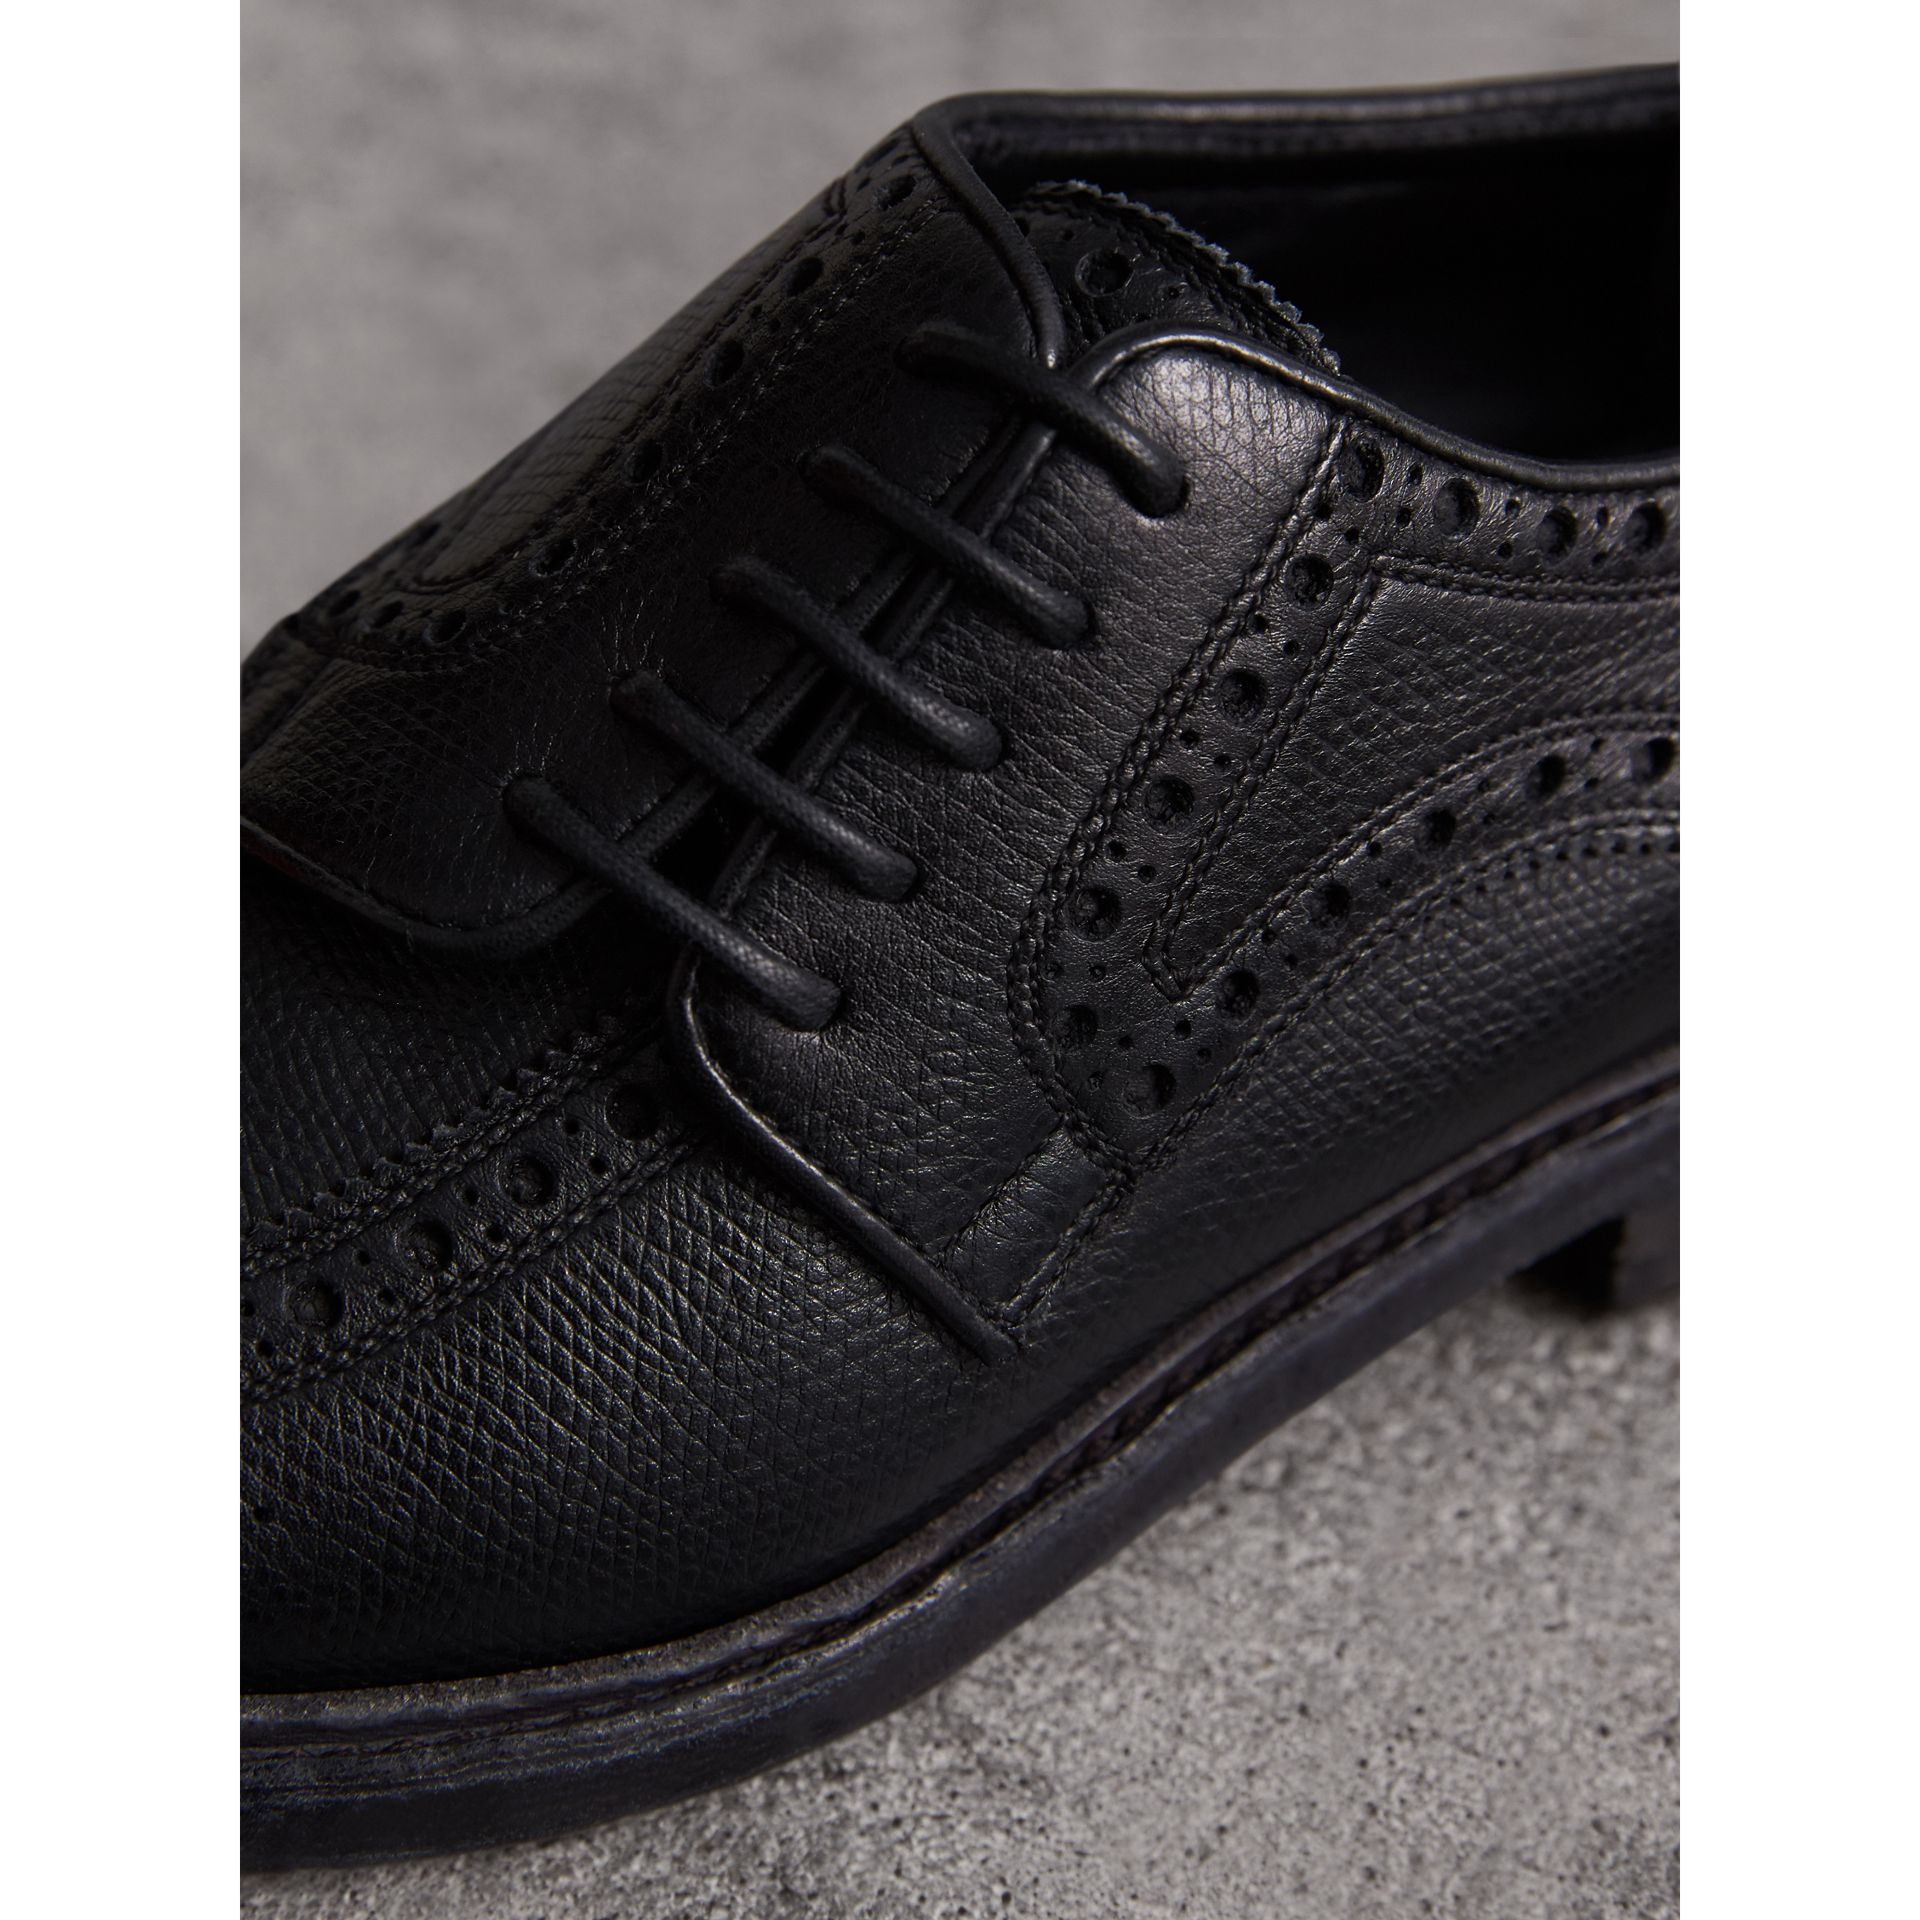 Lace-up Brogue Detail Textured Leather Asymmetric Shoes in Black - Women | Burberry - gallery image 1